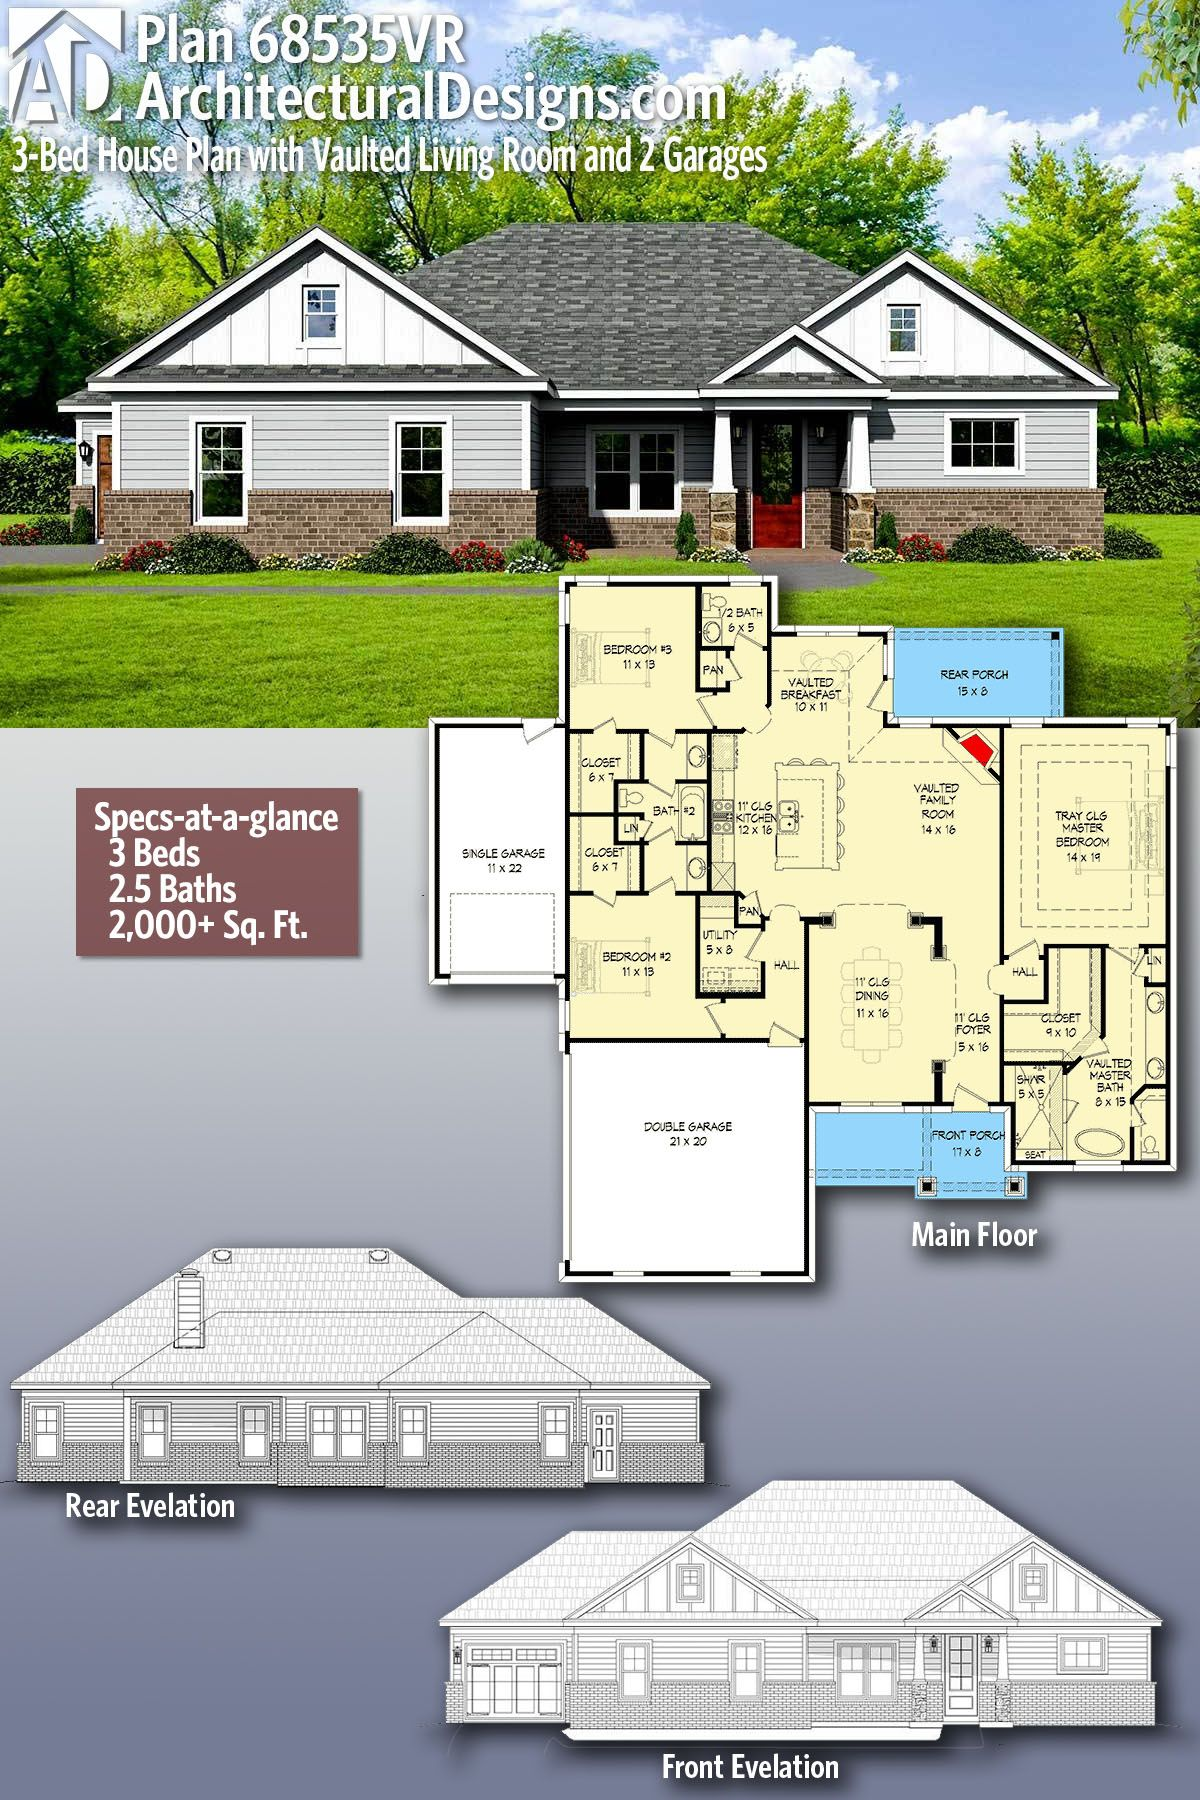 Plan 68535vr 3 Bed House Plan With Vaulted Living Room And 2 Garages Craftsman House Plans Architectural Design House Plans House Plans